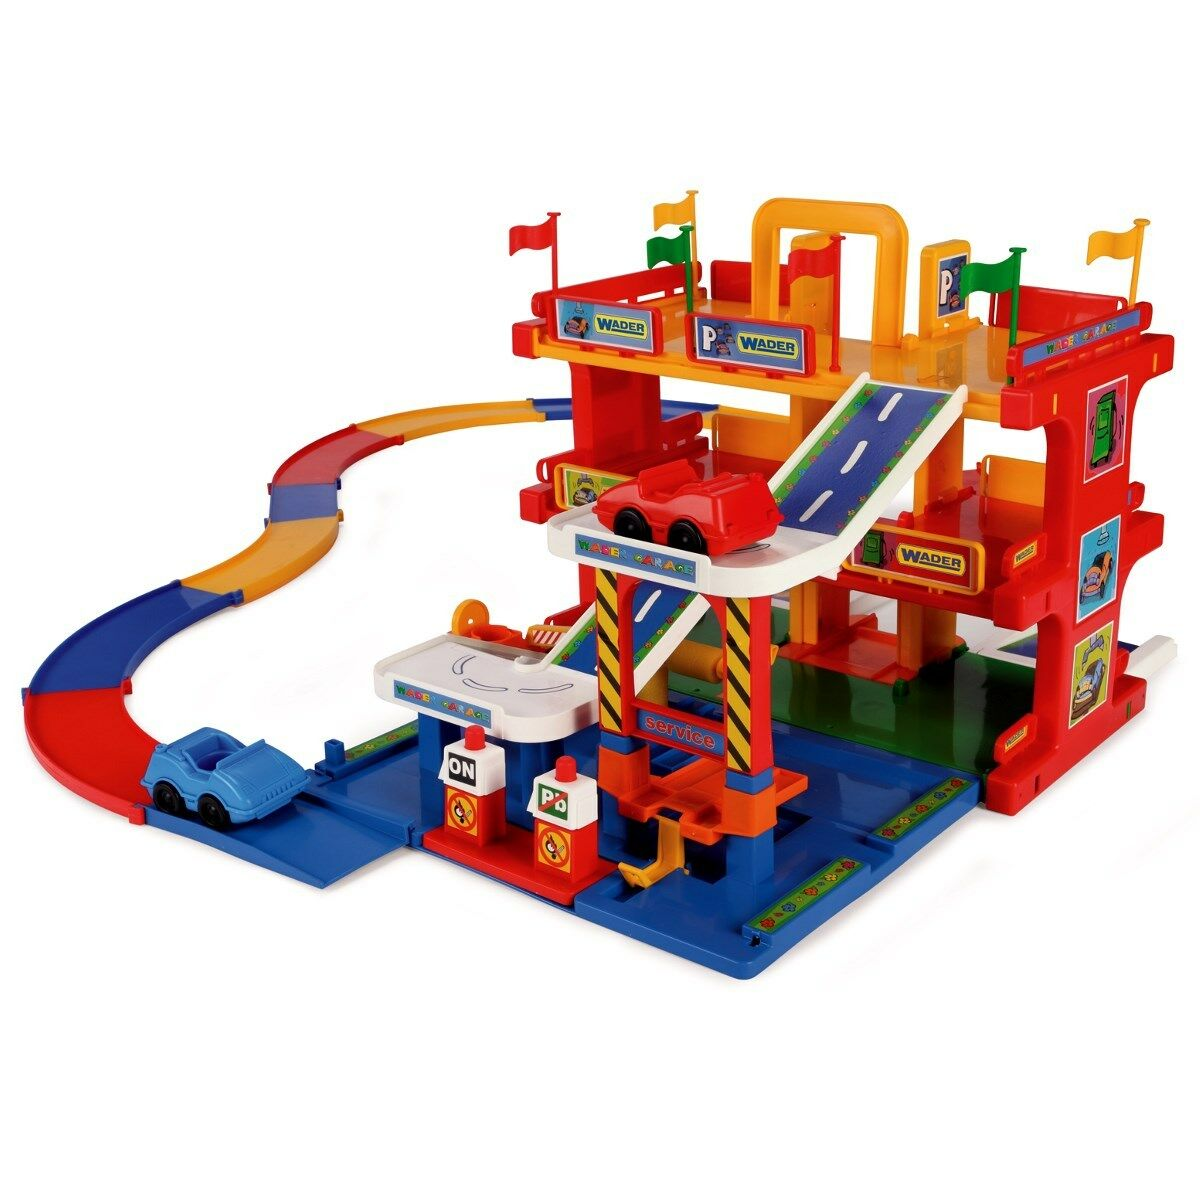 Car Park Garage Play Street Parking Garage with Lift 3 Levels Toy Car Wader